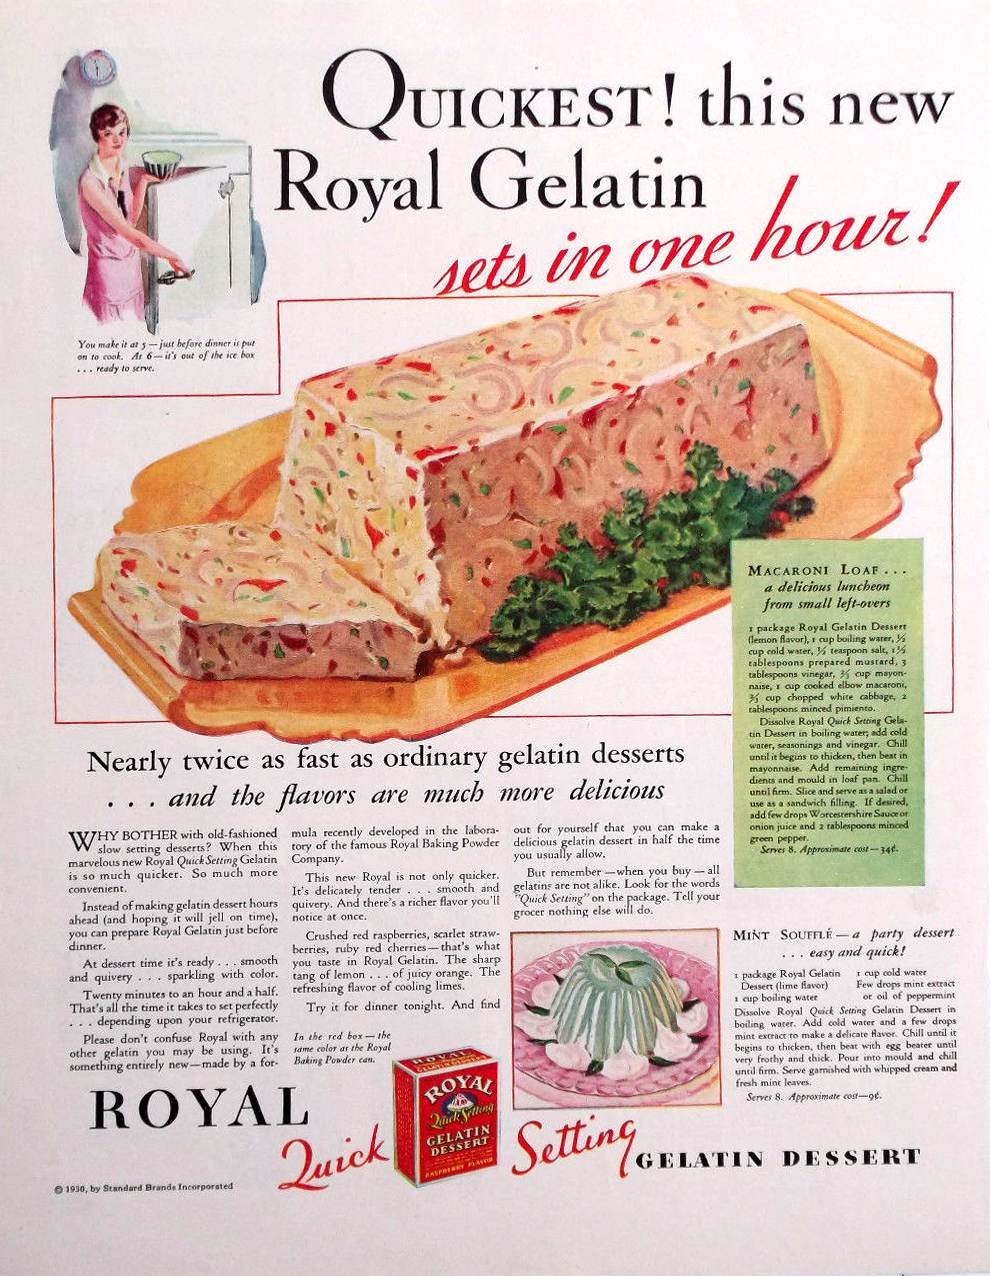 Macaroni Loaf from 1934